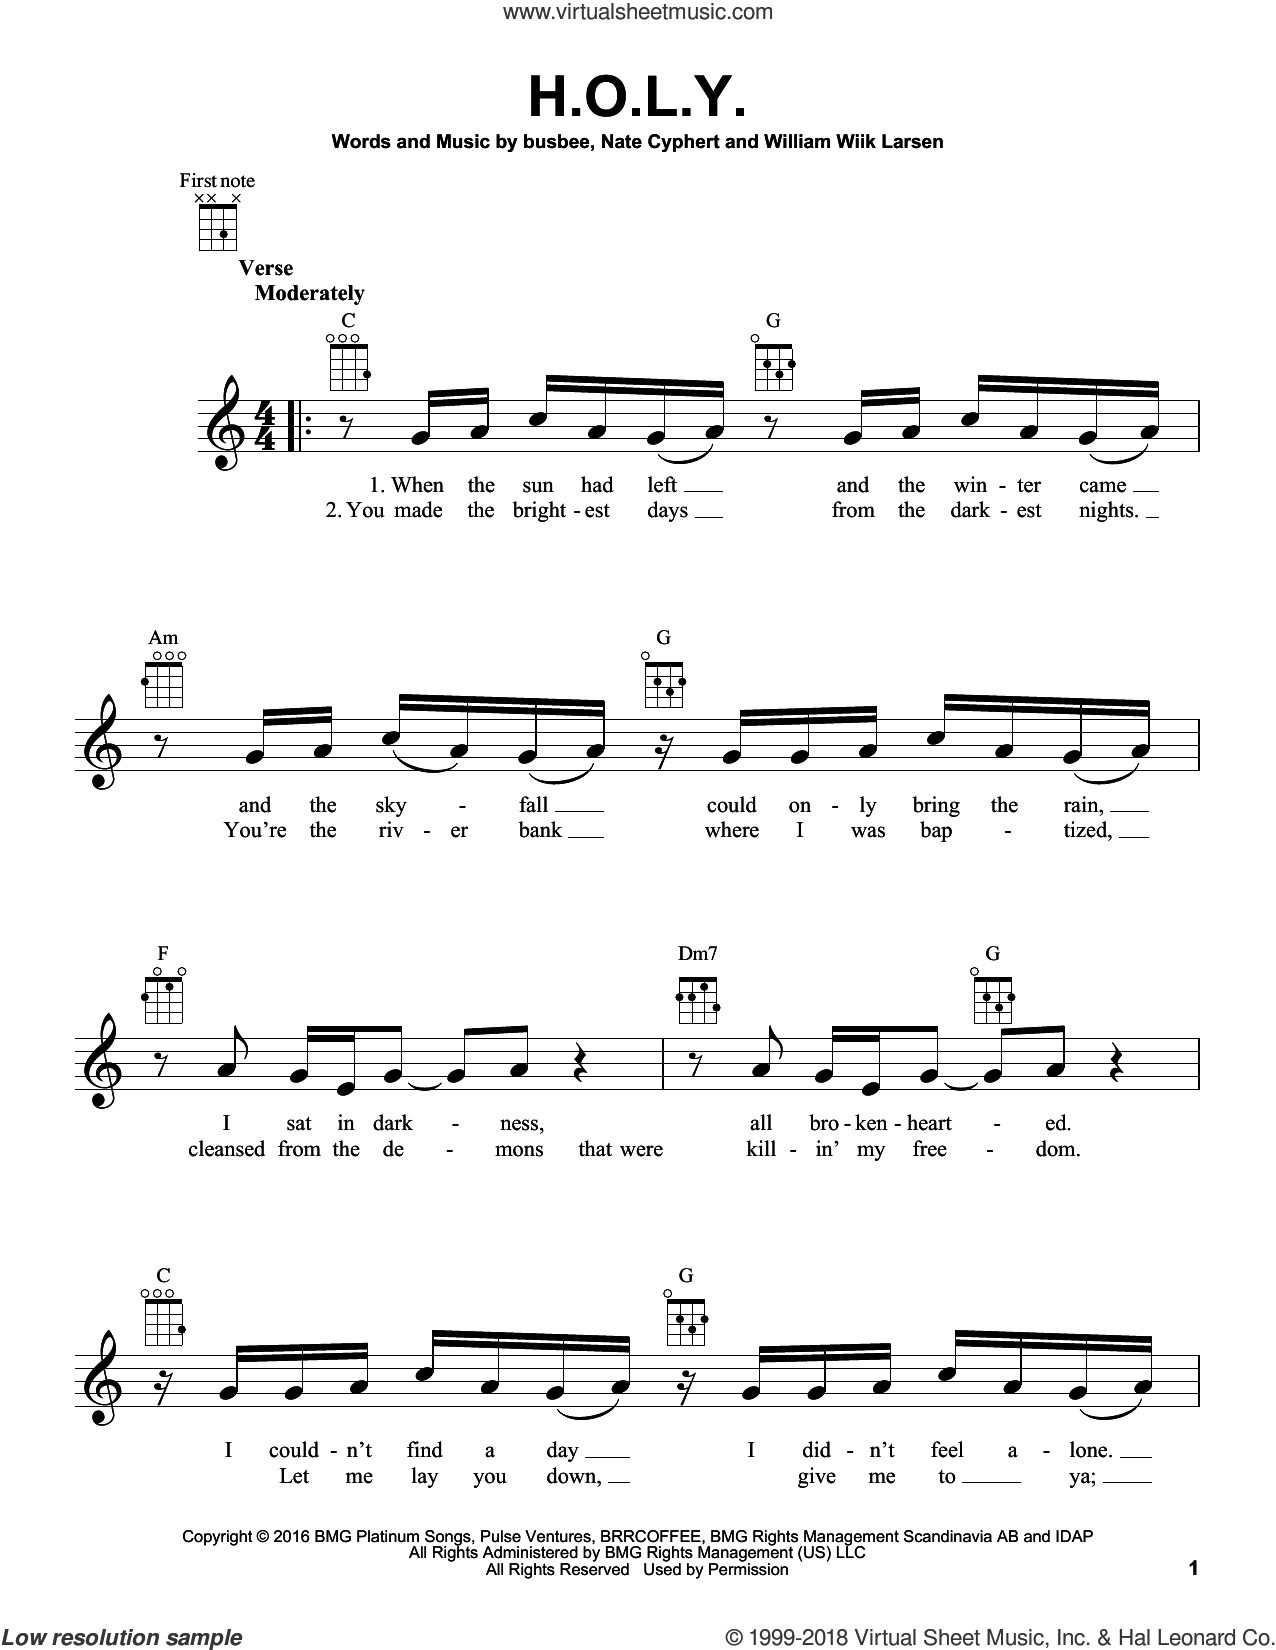 H.O.L.Y. sheet music for ukulele by William Wiik Larsen, Florida Georgia Line and busbee. Score Image Preview.